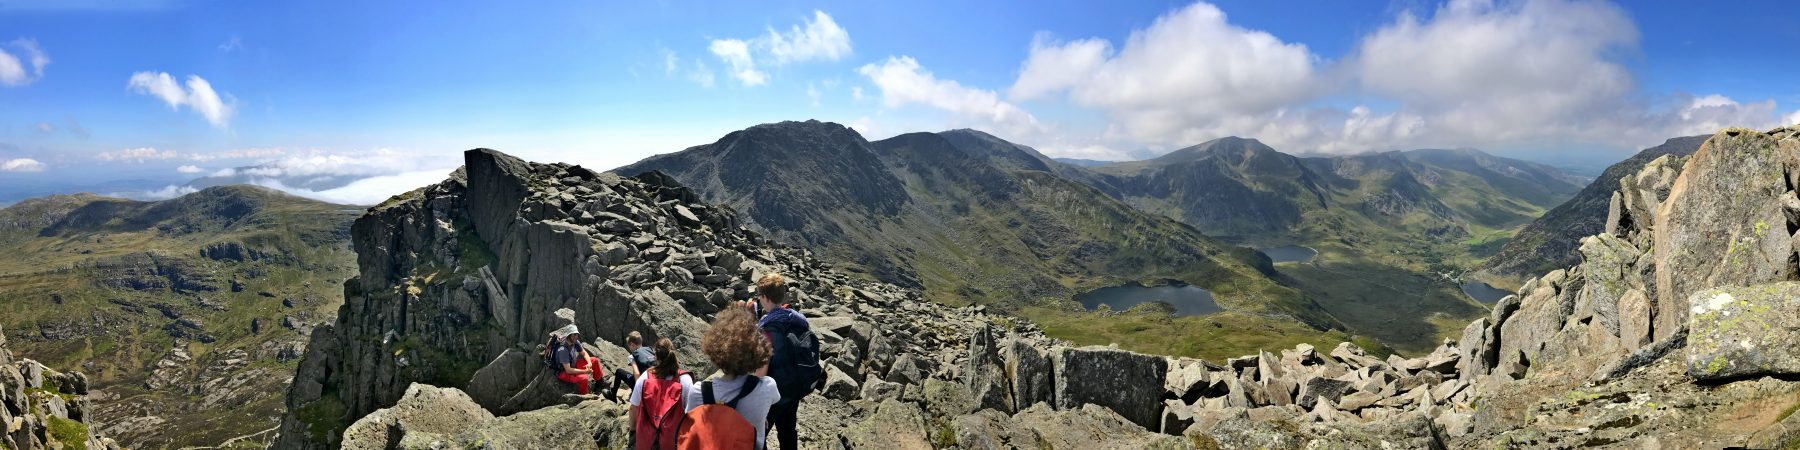 mountain walking activity in Snowdonia with pupils